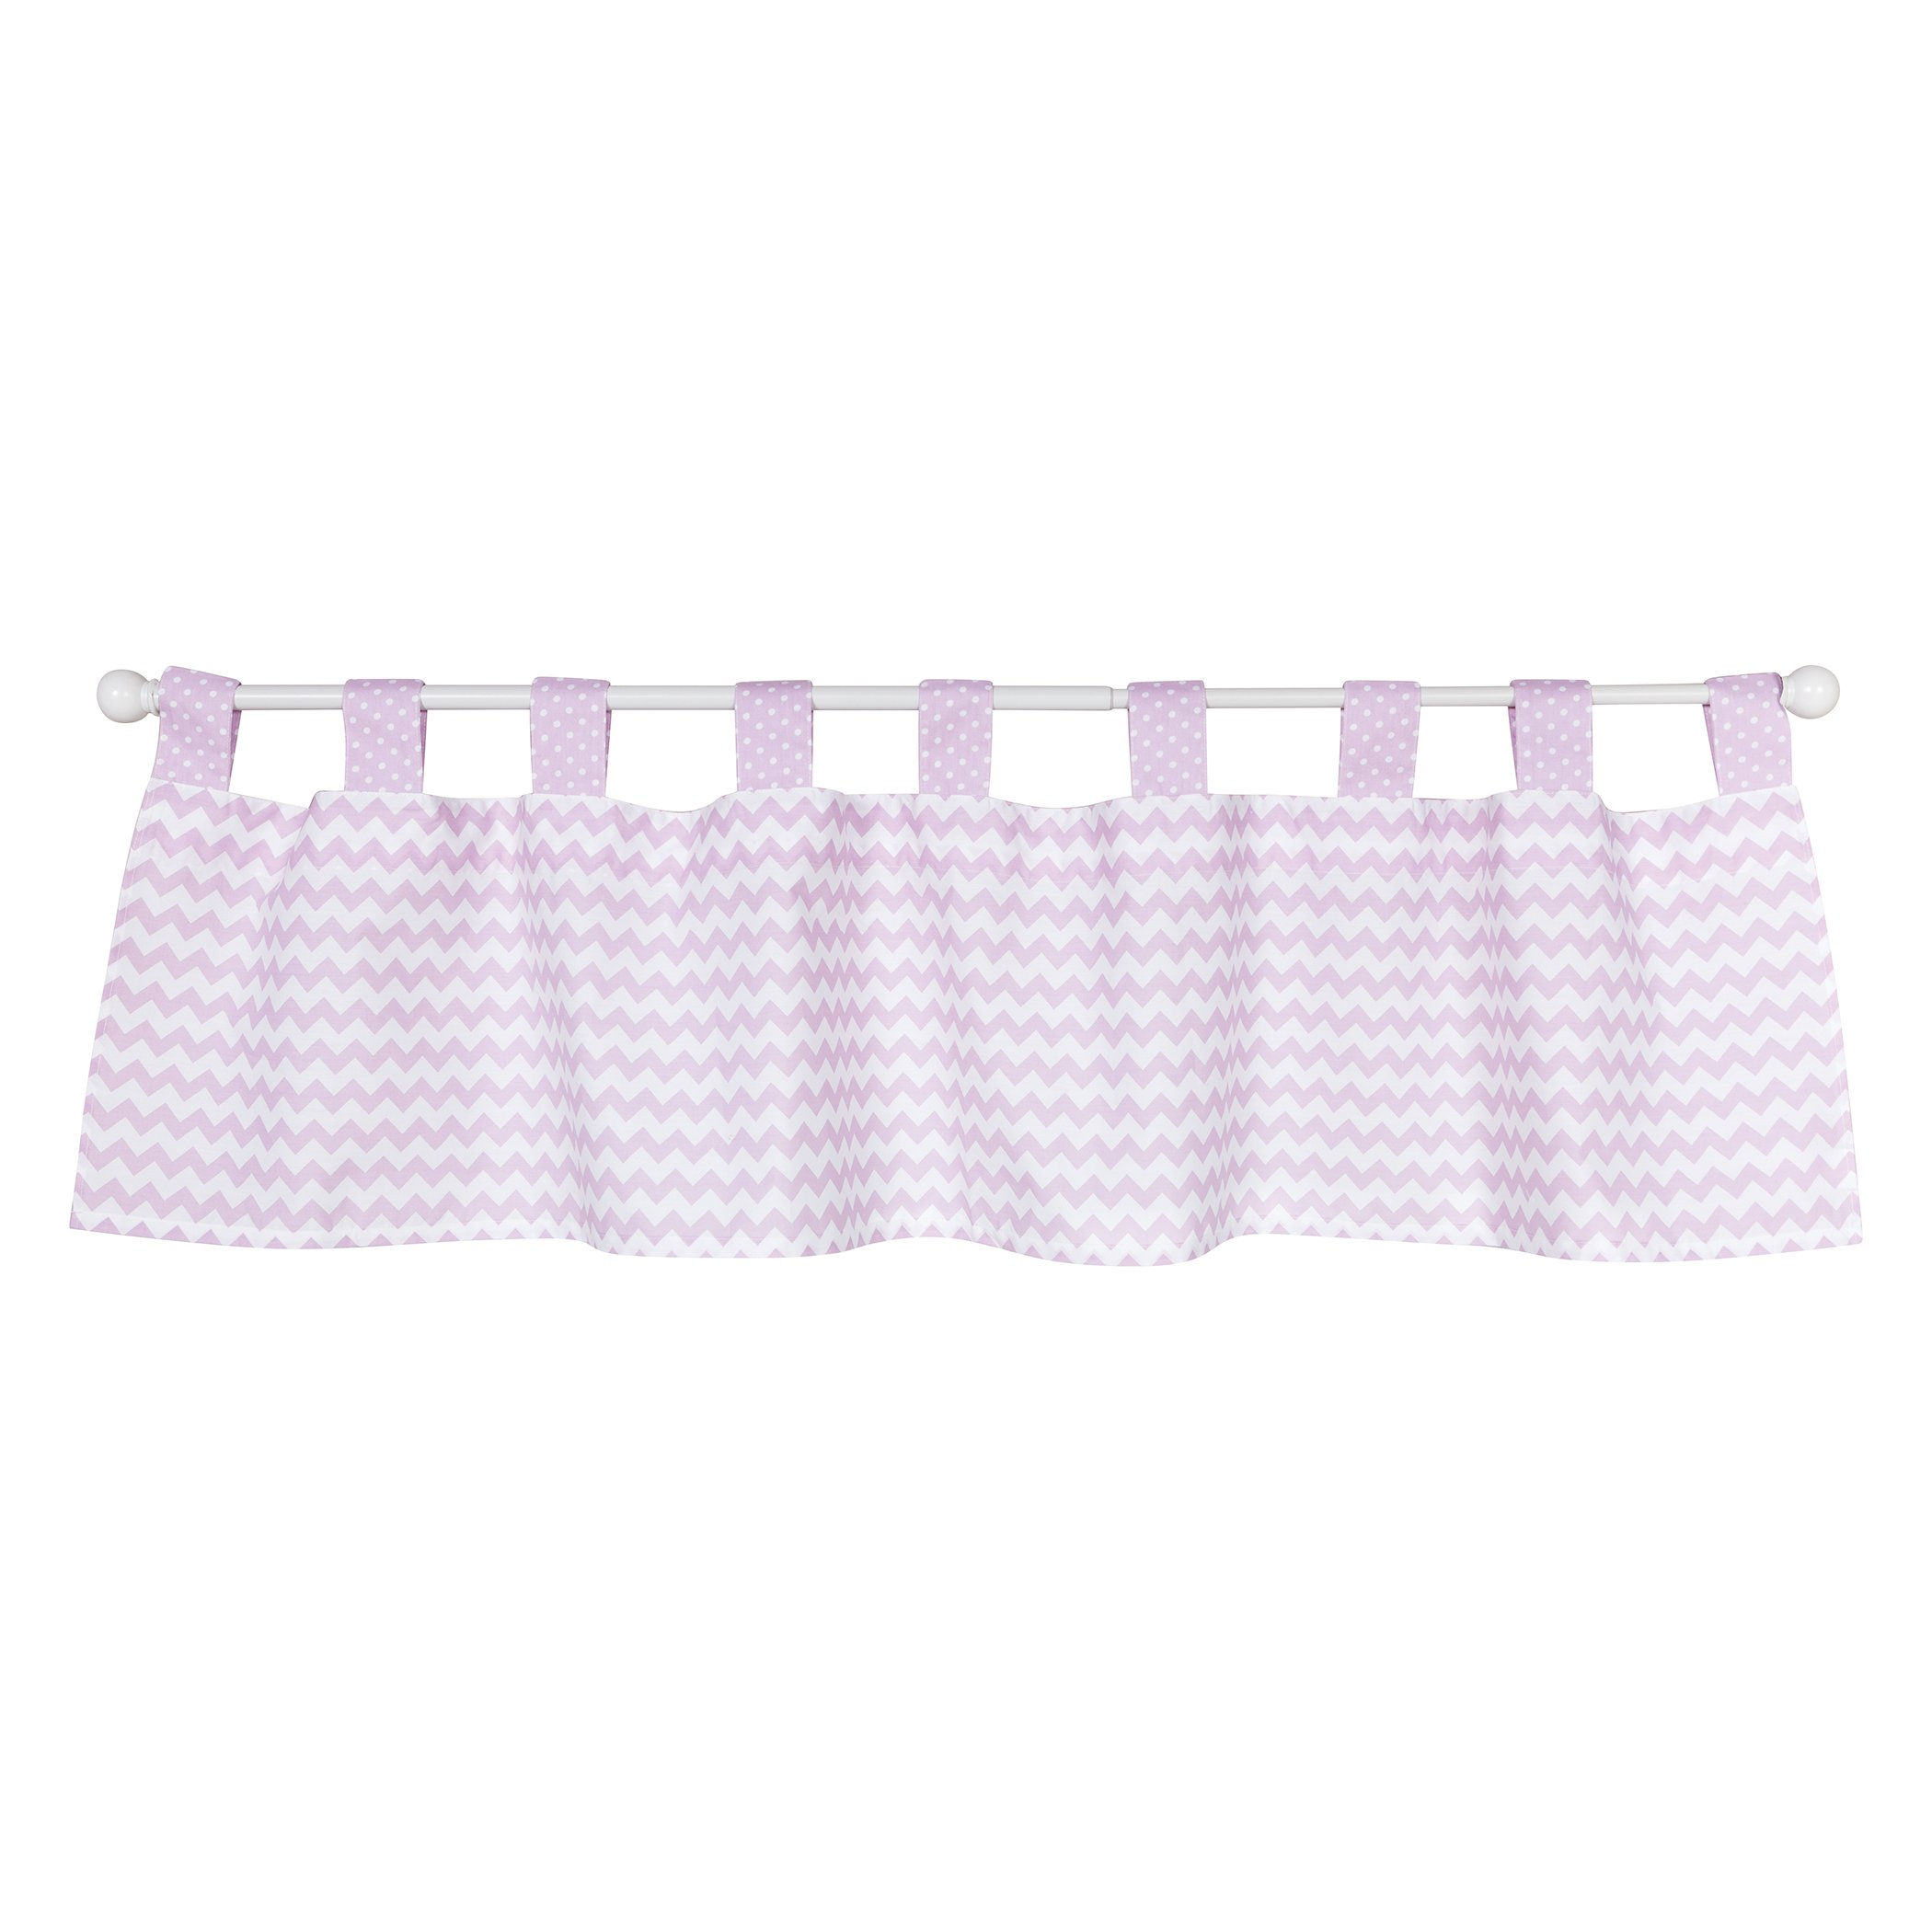 australia mysterious purple info sheer nnttplay loading valances valance curtains ominous hallway target